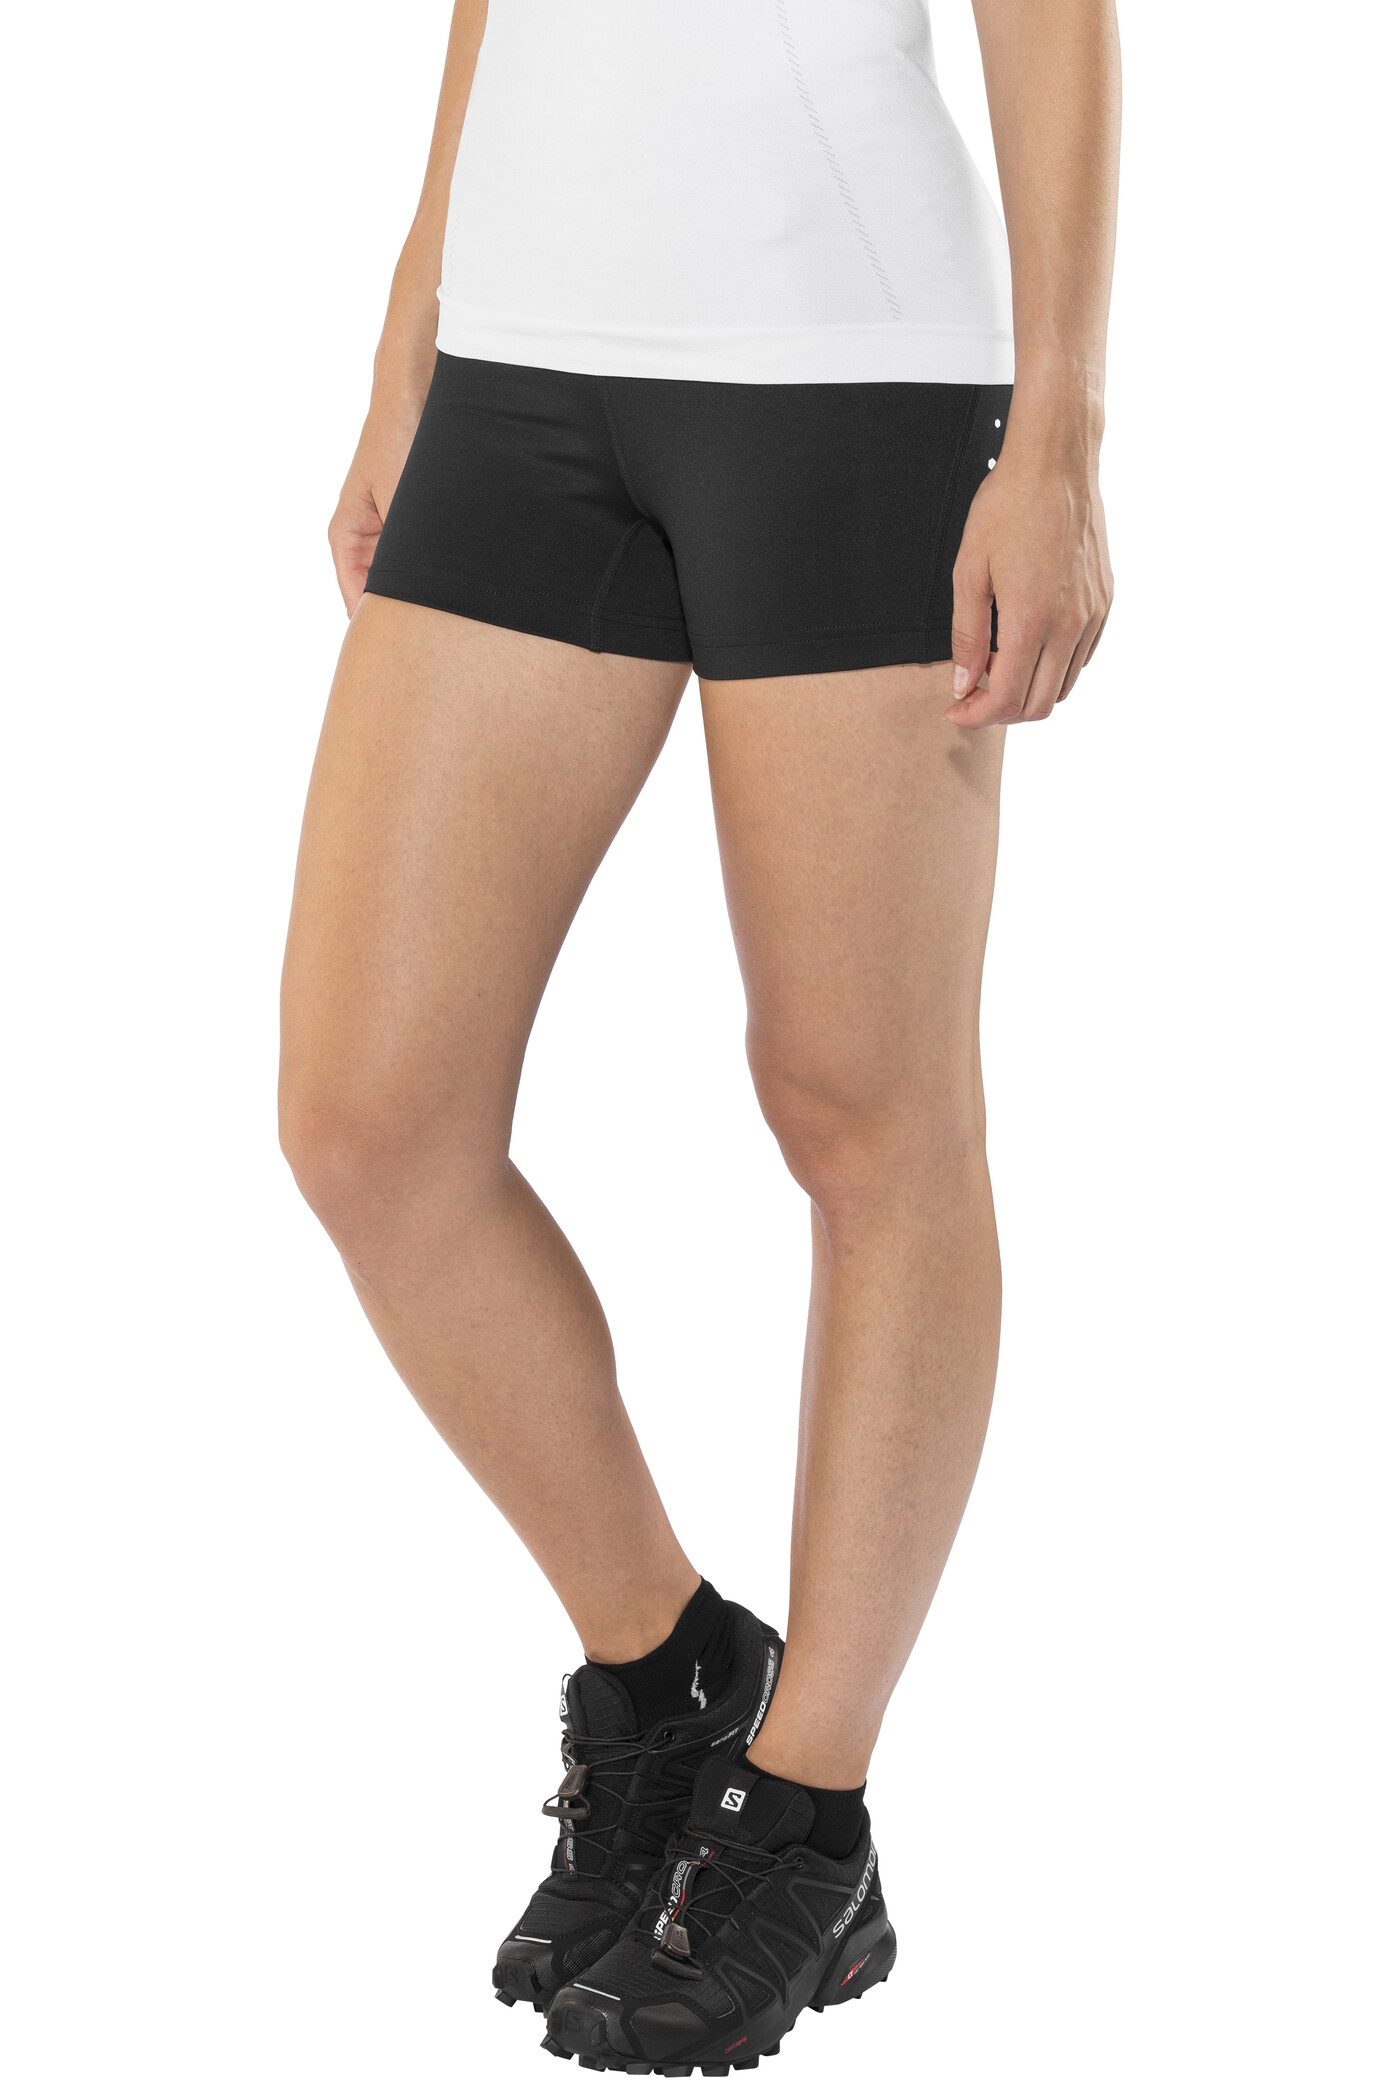 Sonstige Outdoor-Bekleidung Columbia Saturday Trail Skort Women Wine Berry 2019 Rock rot Outdoor-Bekleidung